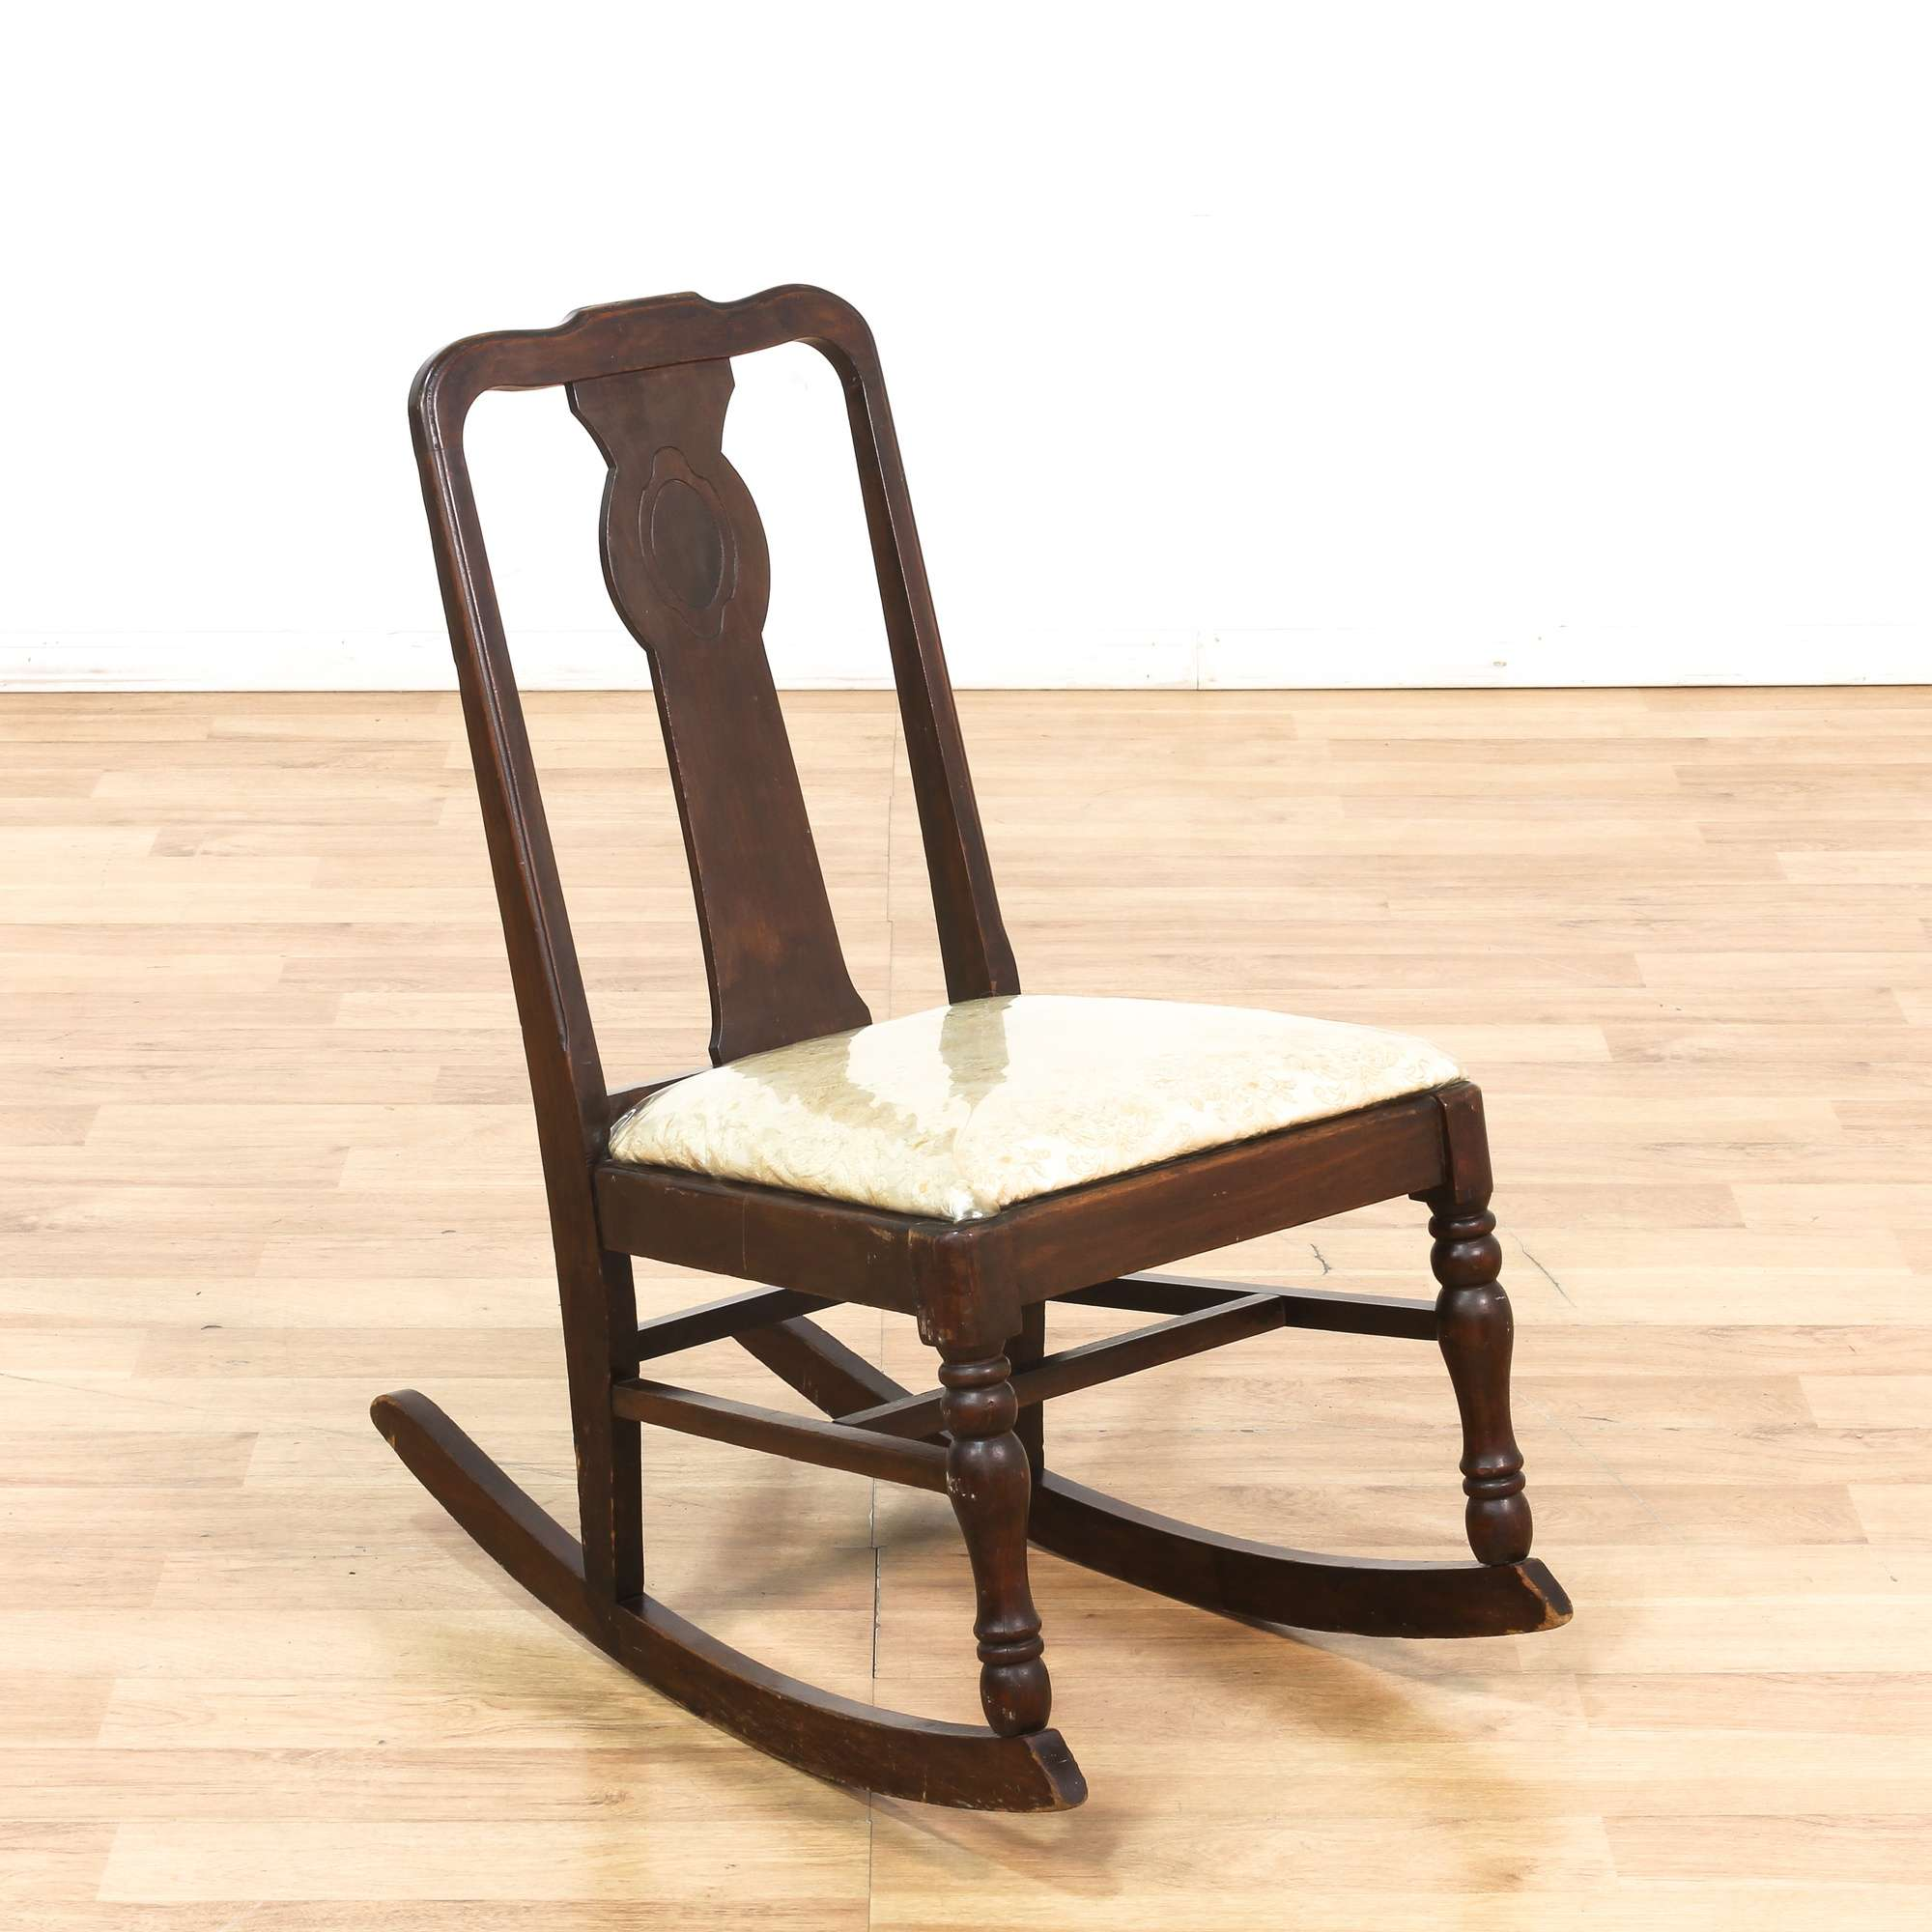 Small Dark Wood Rocking Chair w Upholstered Seat